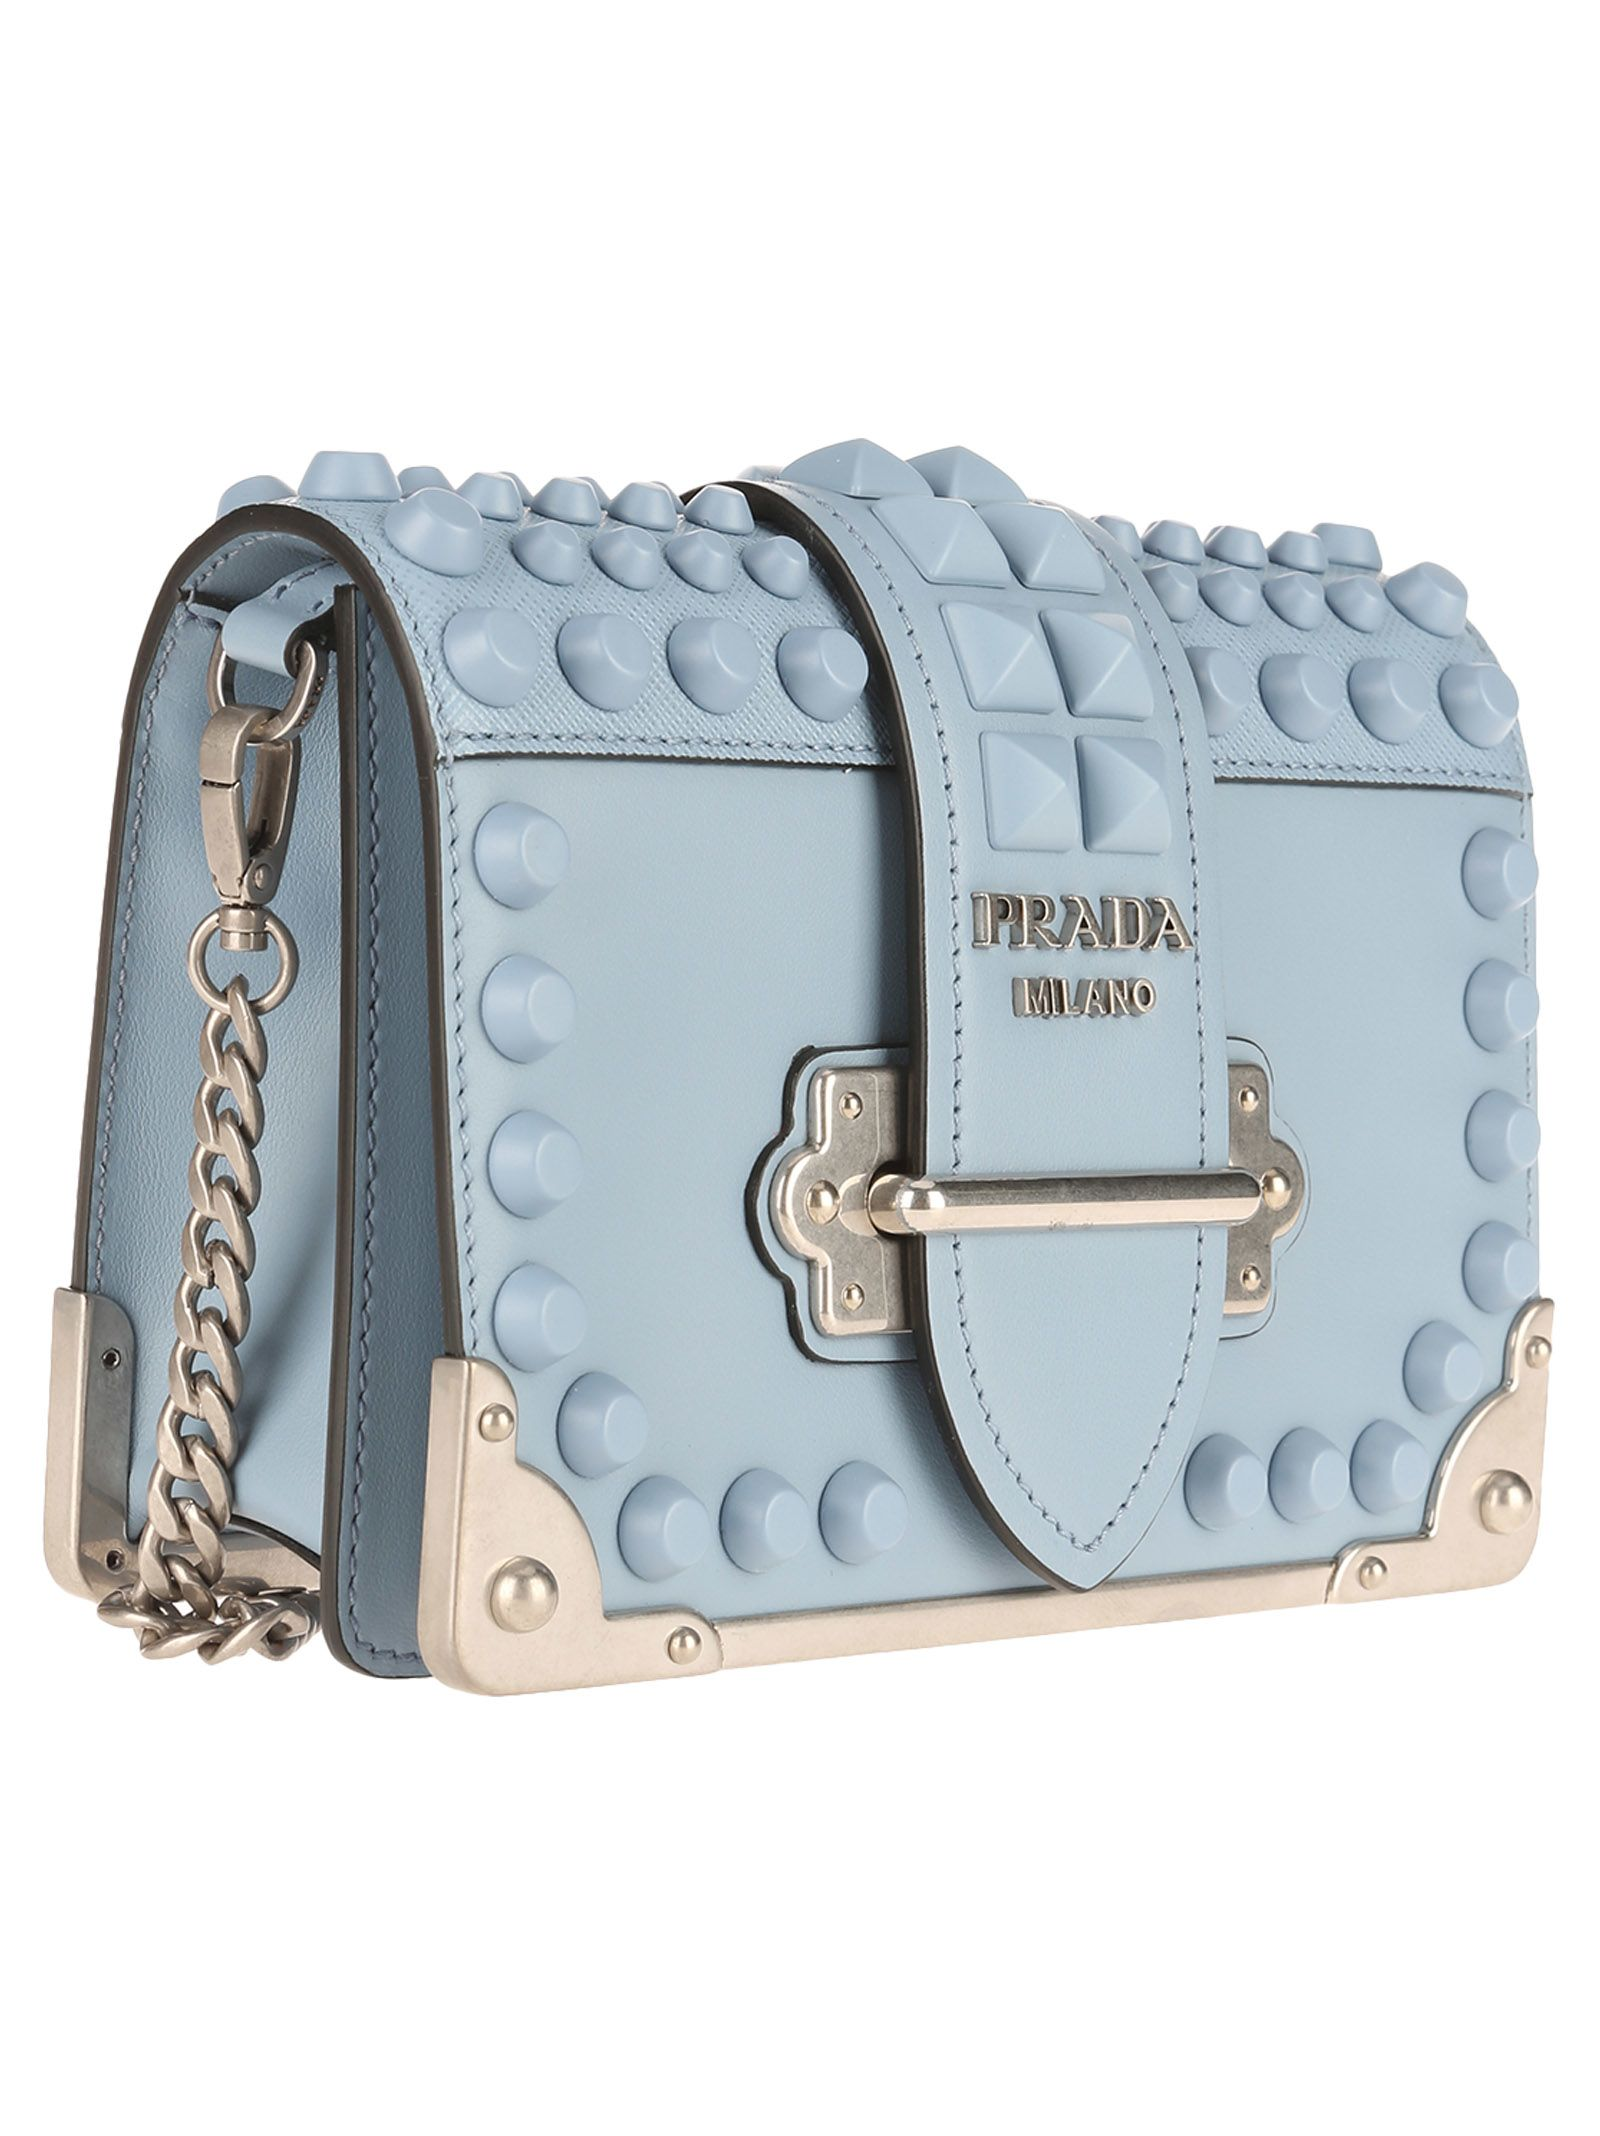 202d06dc8a21 Prada Cahier Bag Light Blue | Stanford Center for Opportunity Policy ...